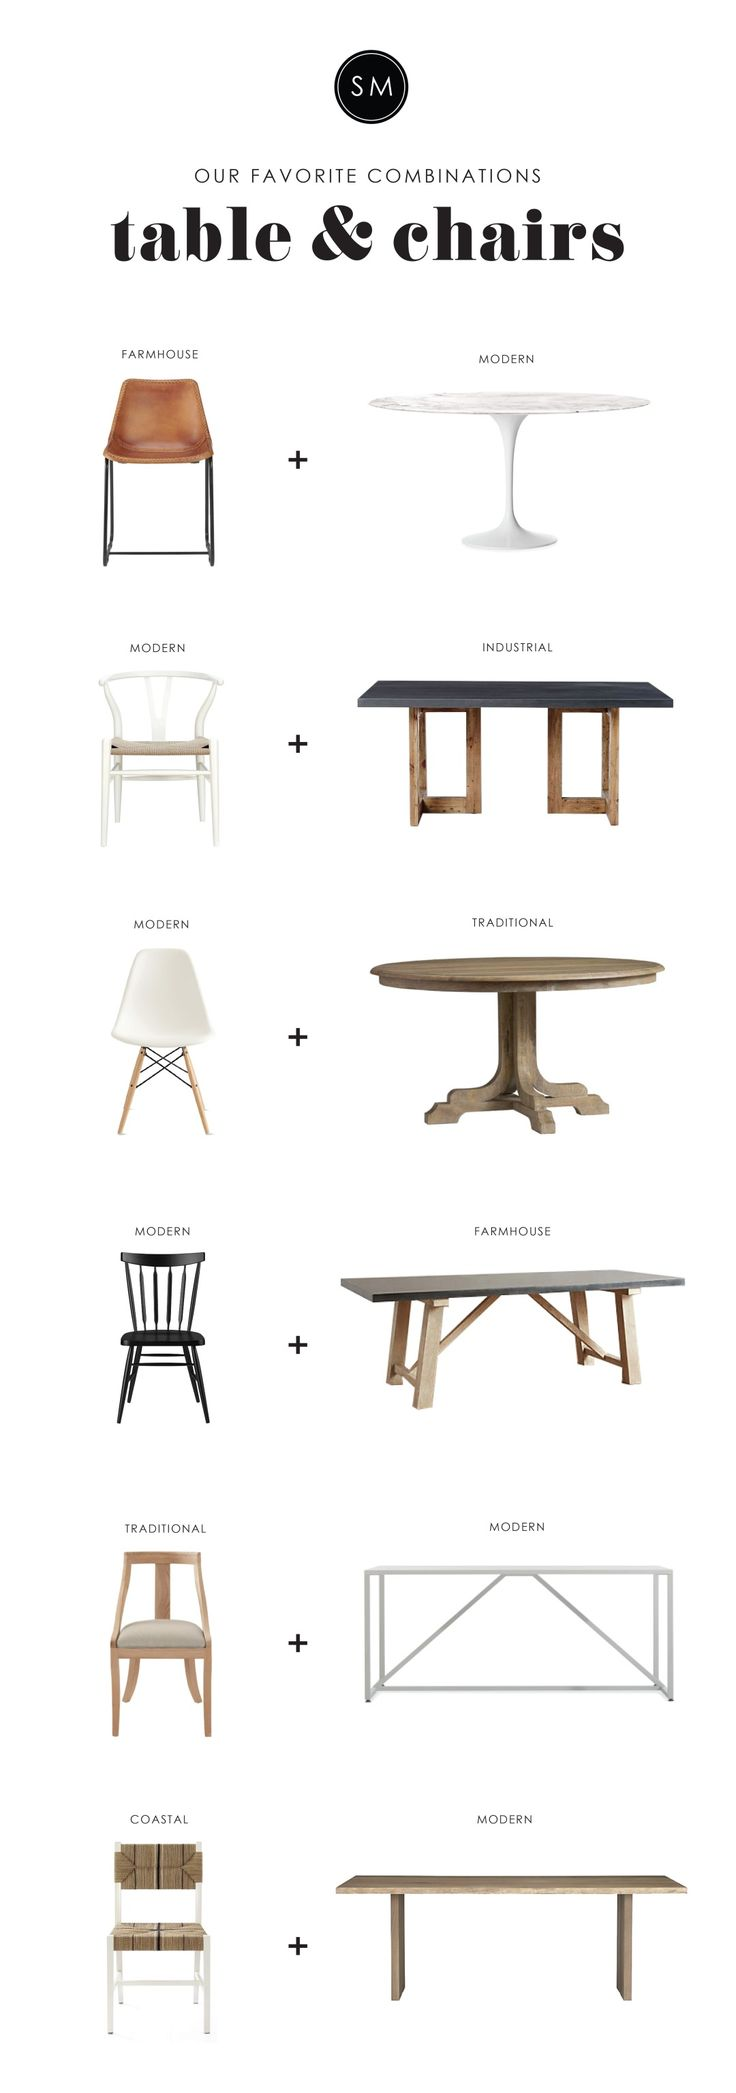 "Shop roadhouse leather chair, Saarinen Oval Dining Table, Wishbone Chair, Ashton Dining Table 68"""", Lava Stone/Reclaimed Pine, Eames® Molded Plastic Dowel-Leg Side Chair (DSW), Linden Fixed Pedestal Table, Grey, Willa Black Wood Dining Chair, Laurier Dining Table, Josephine Chair, Strut 56"" Table Finish: White, Carson Side Chair, Monarch 108"" Natural Solid Walnut Dining Table and more"